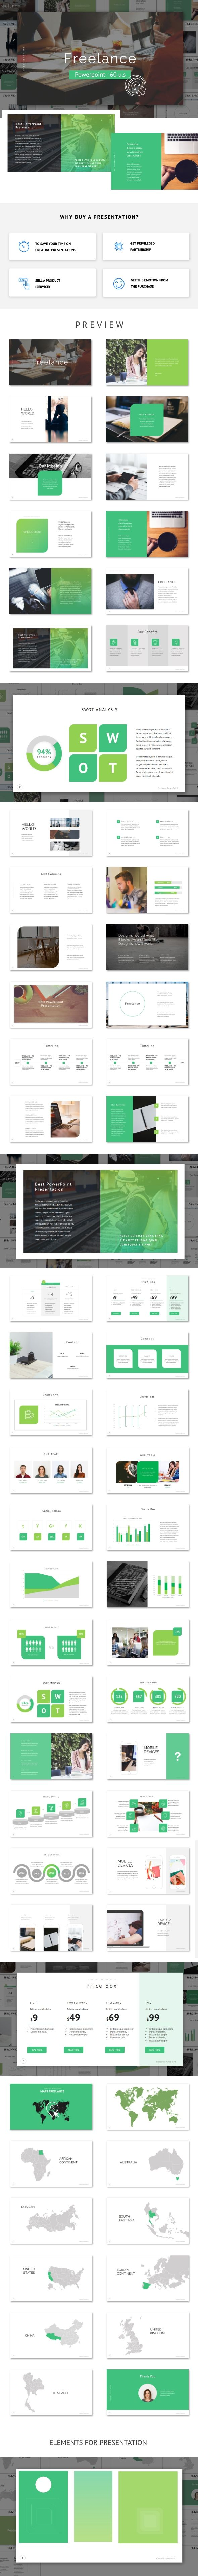 394 best ppt templates images on pinterest ppt template layout freelance powerpoint template toneelgroepblik Image collections